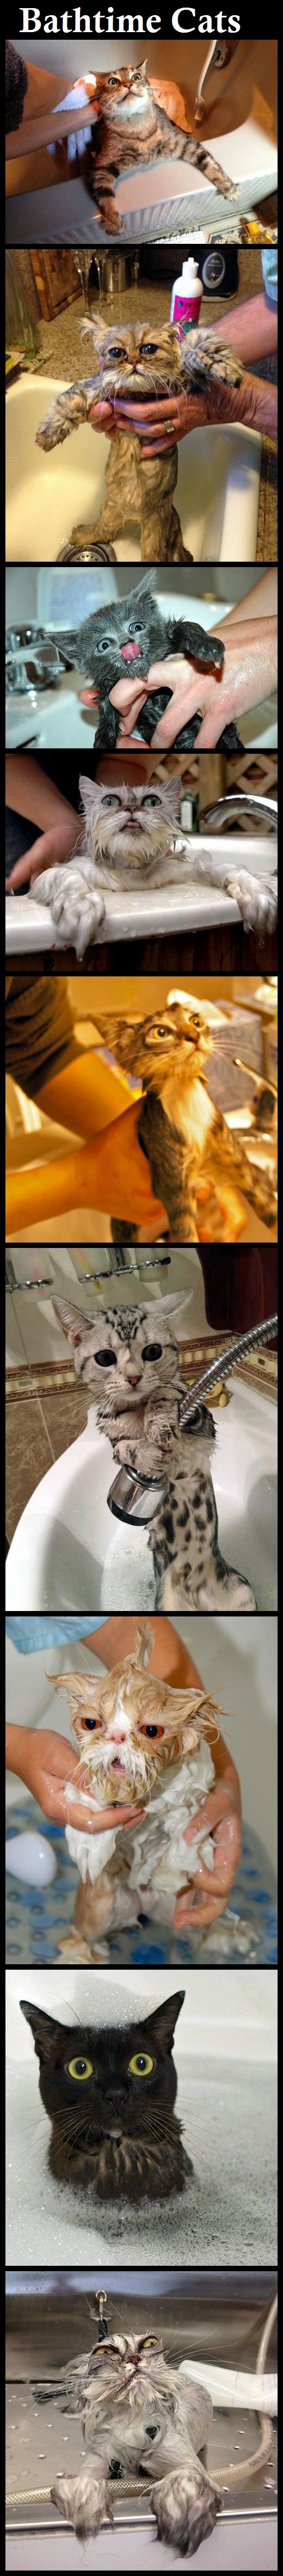 Funny Unhappy Bathtime Cats Photo Strip